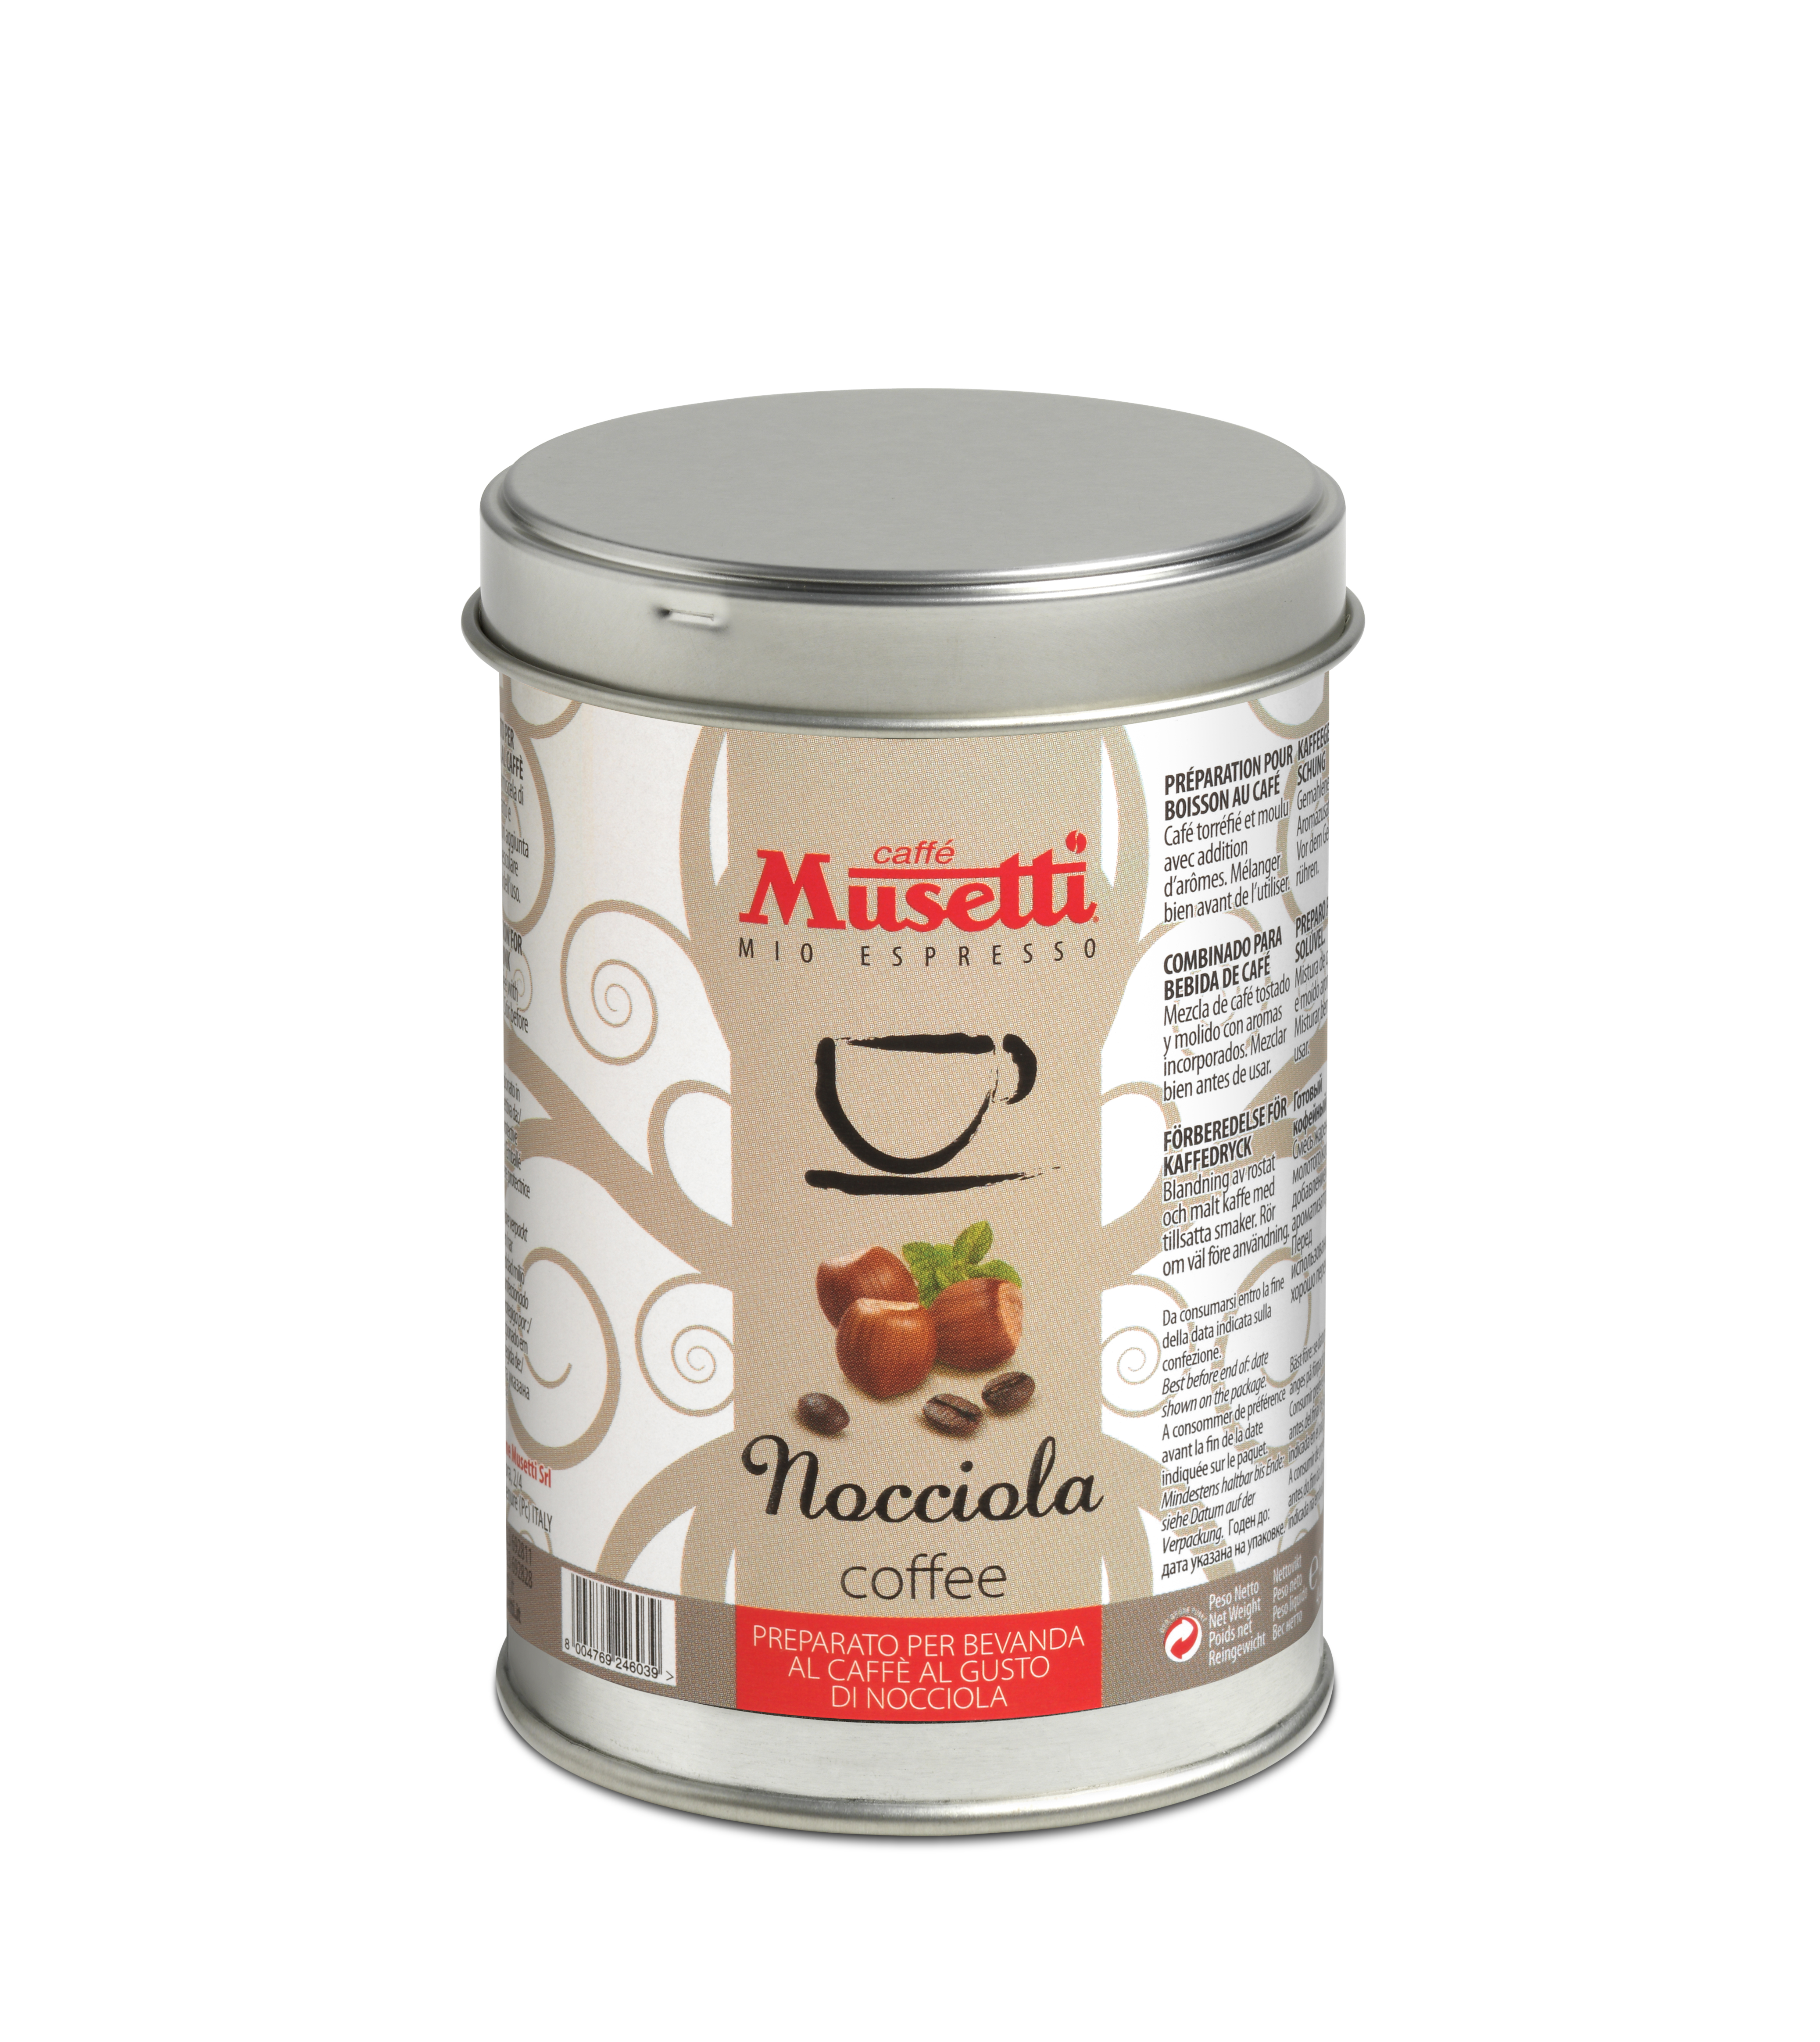 Hazelnut Flavoured Coffee by Musetti, 125 g tin